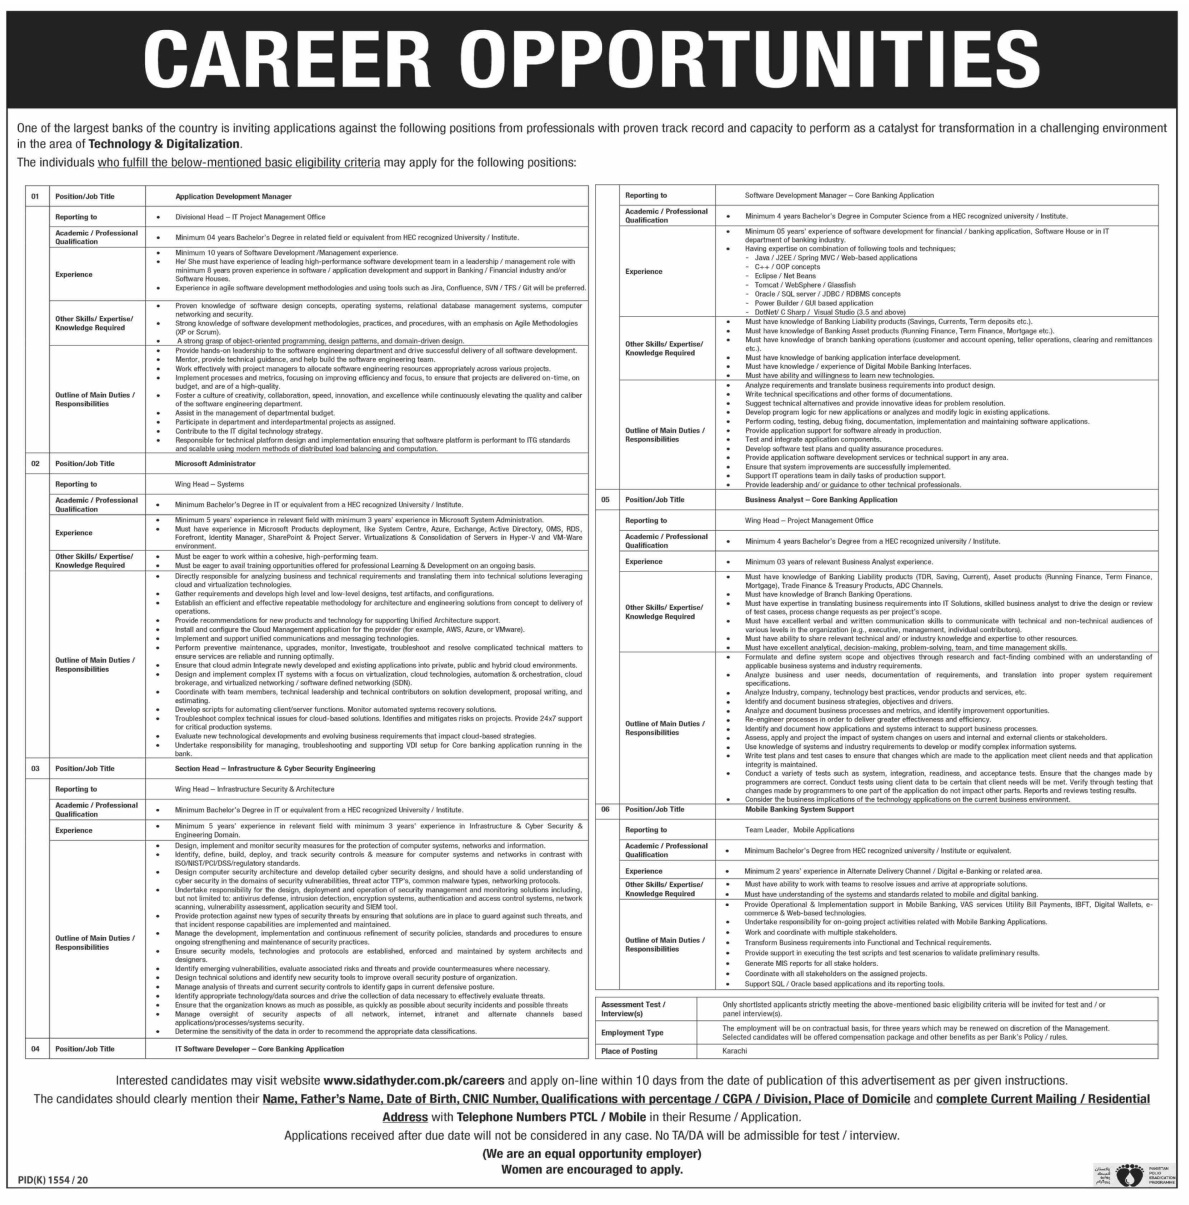 Sidat Hyder Morshed Associates Pvt Ltd Bank Application Development Manager & MS Administrator Jobs 2020